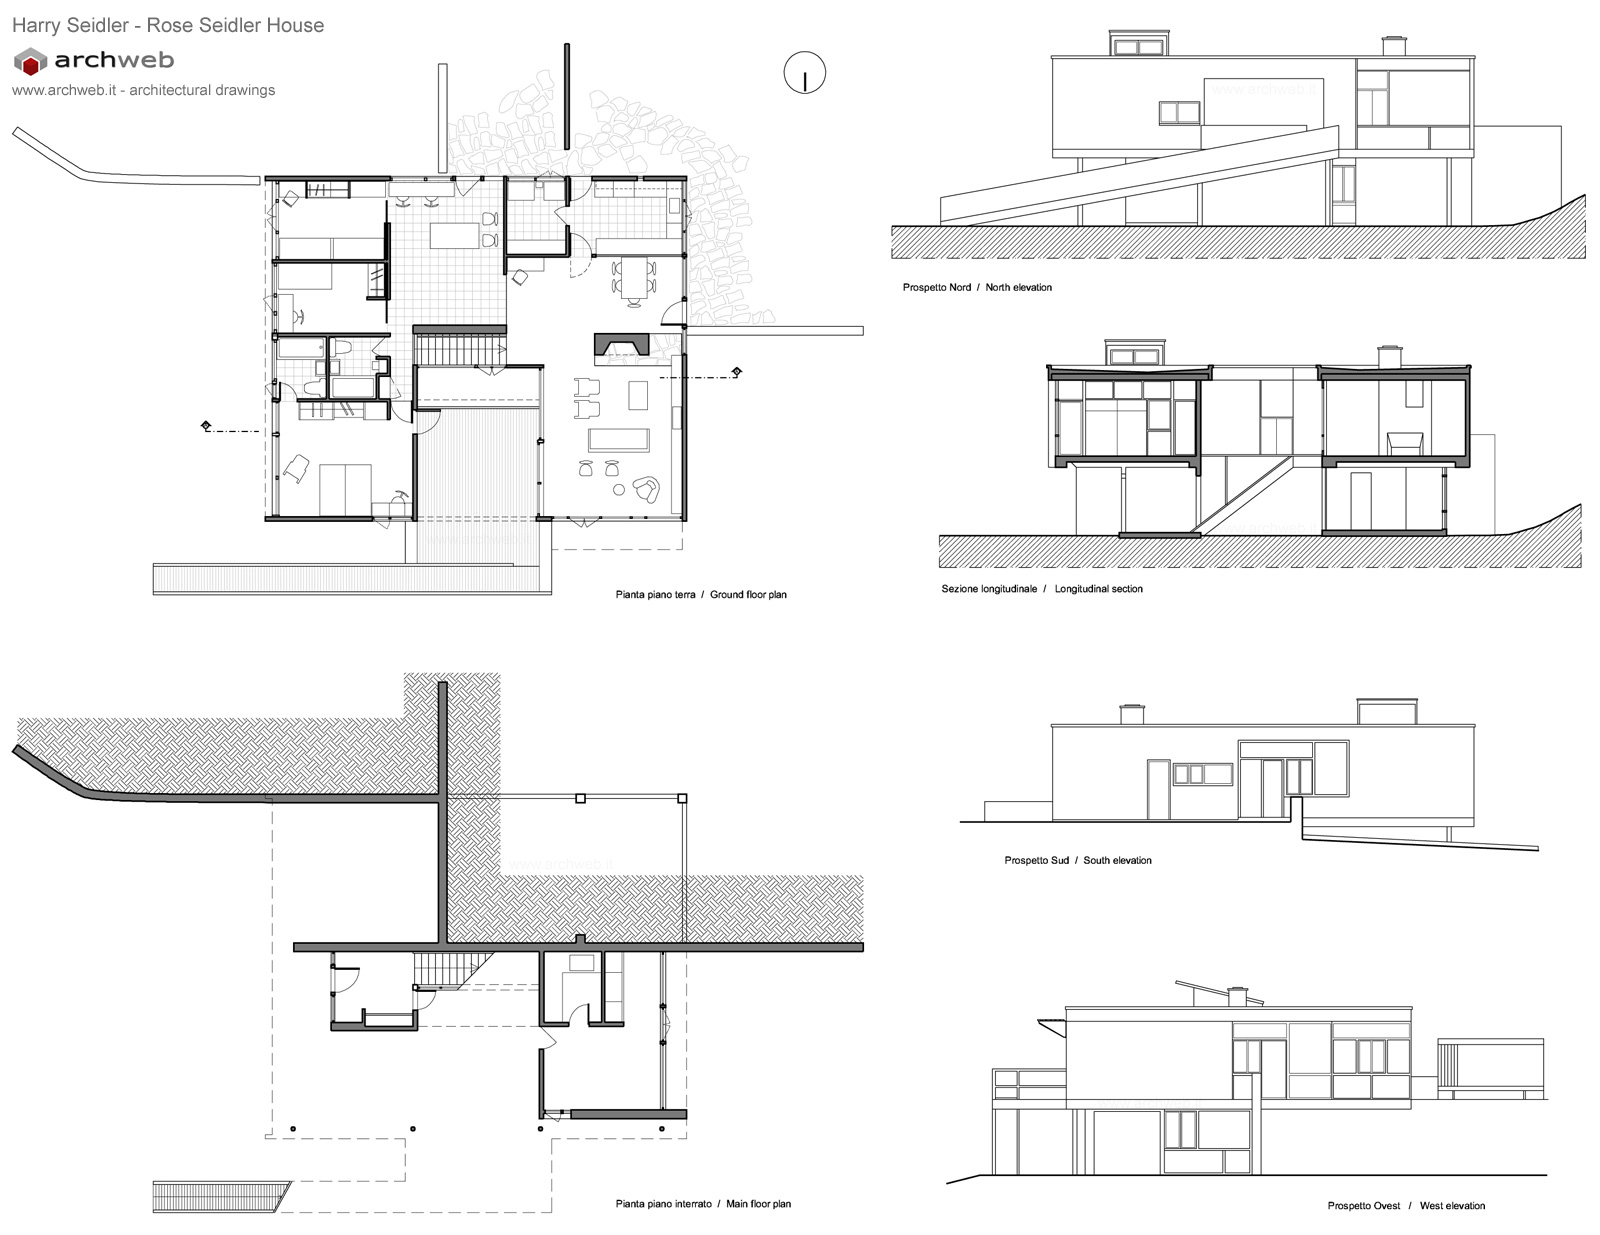 Rose Seidler House plan drawings